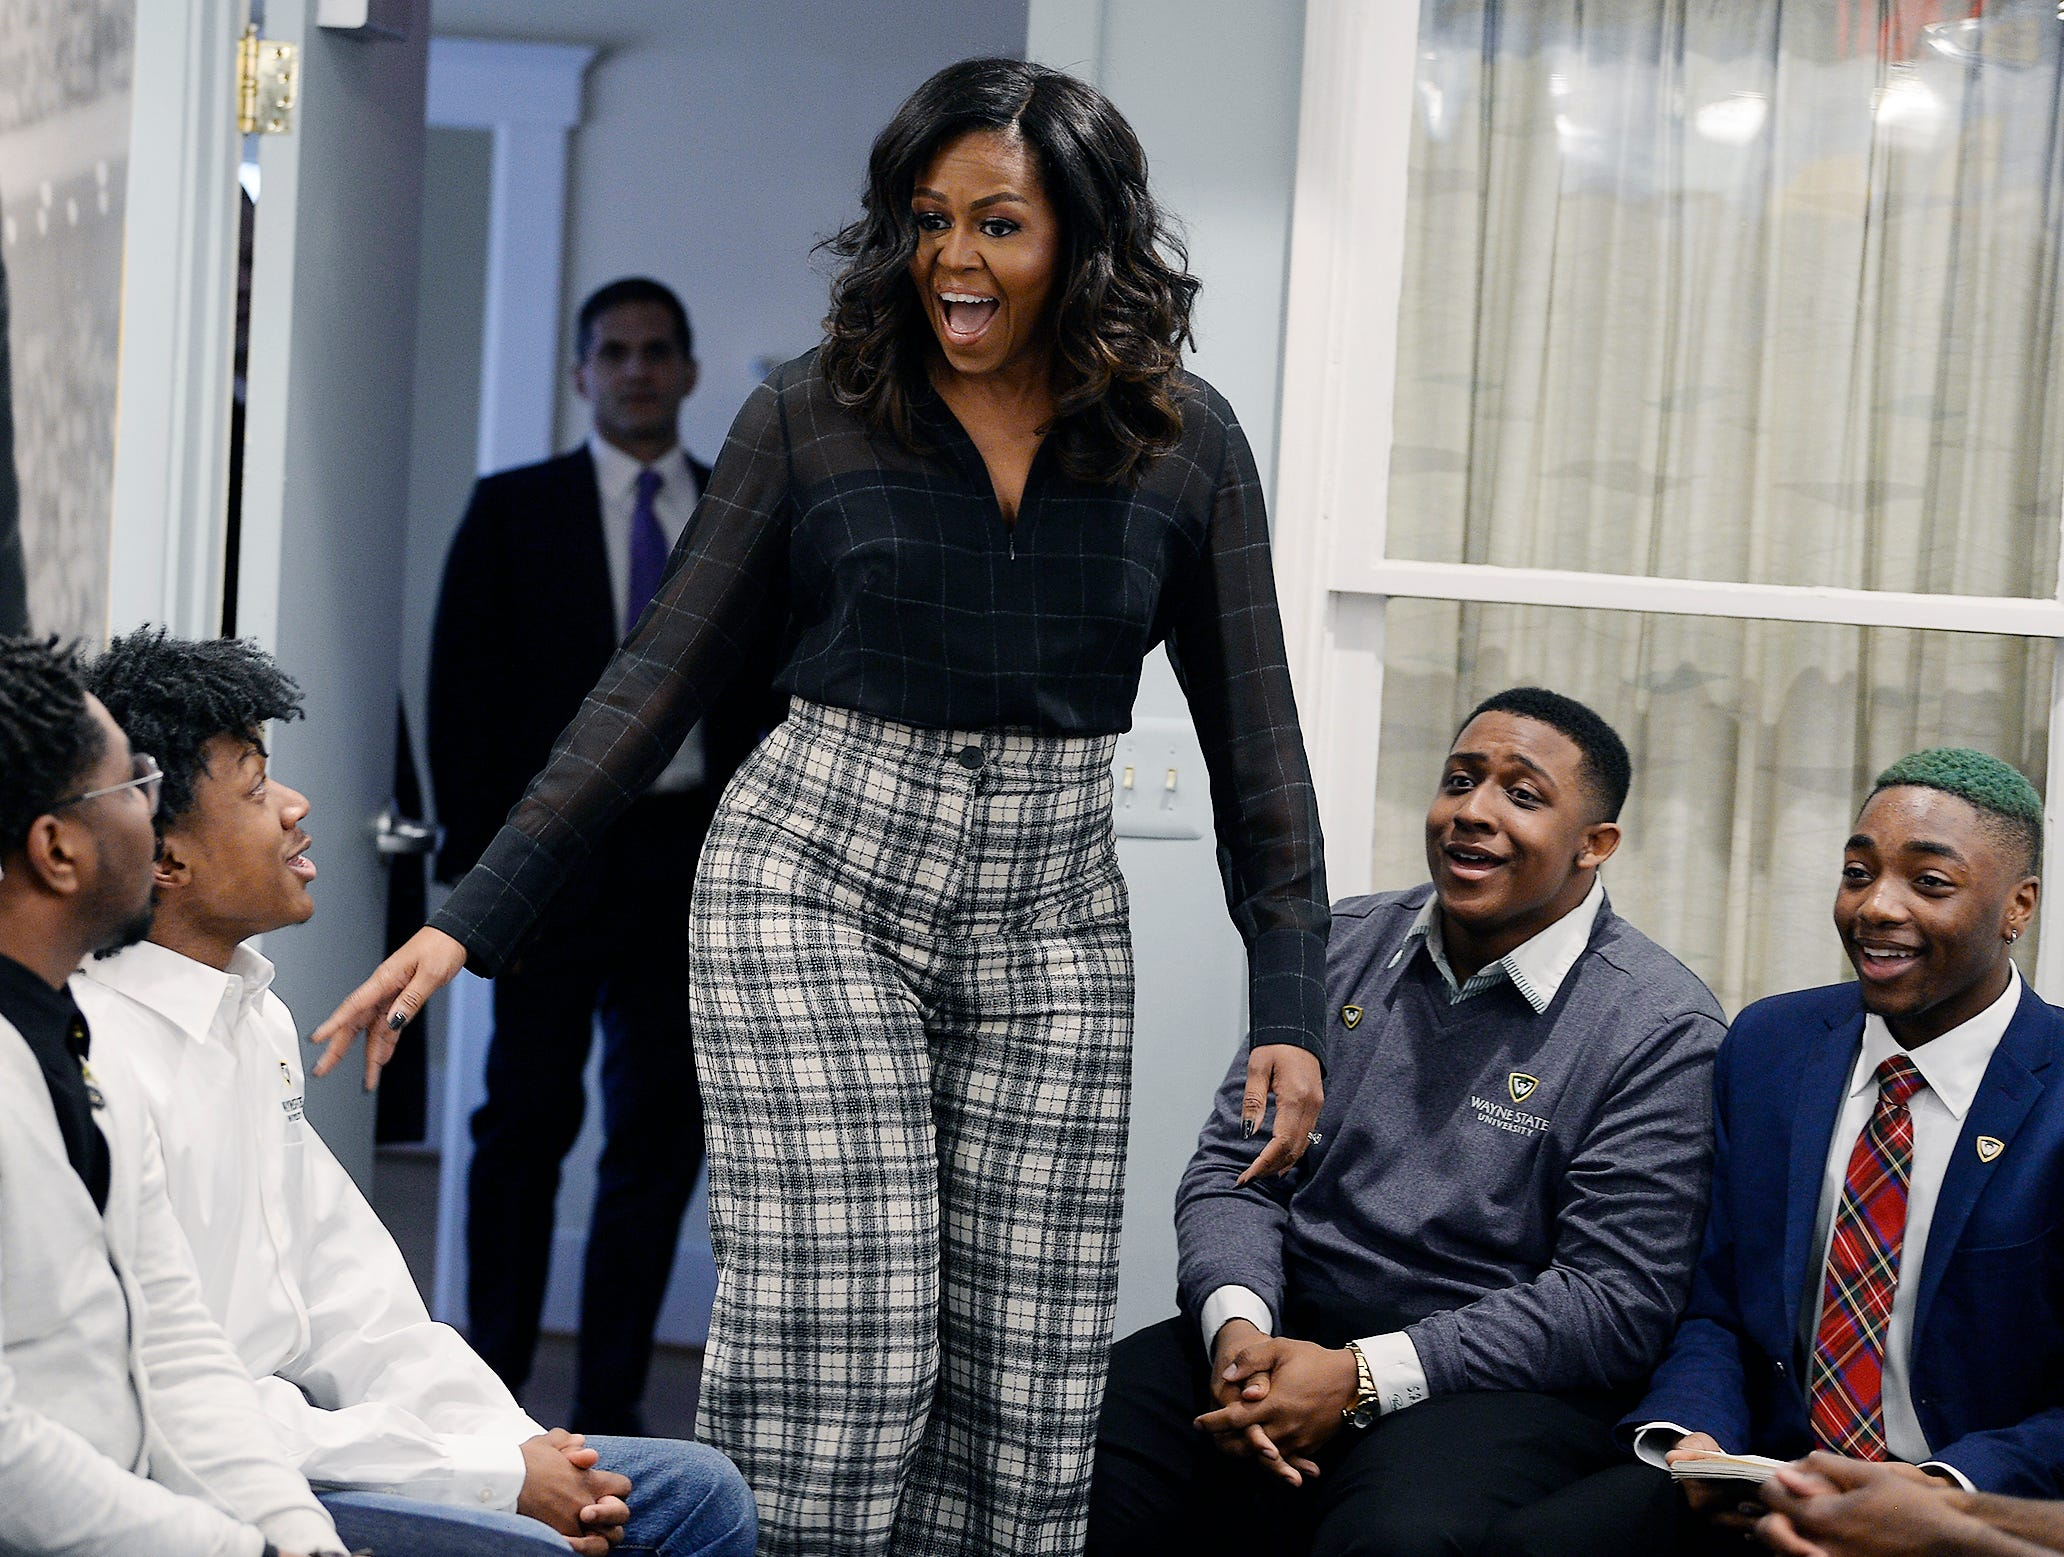 Michelle Obama, in town for her book tour stop at Little Caesars Arena December 11, 2018, surprised 18 Wayne State University students at the Motown Museum by joining a discussion about the challenges young men of color face in Detroit.